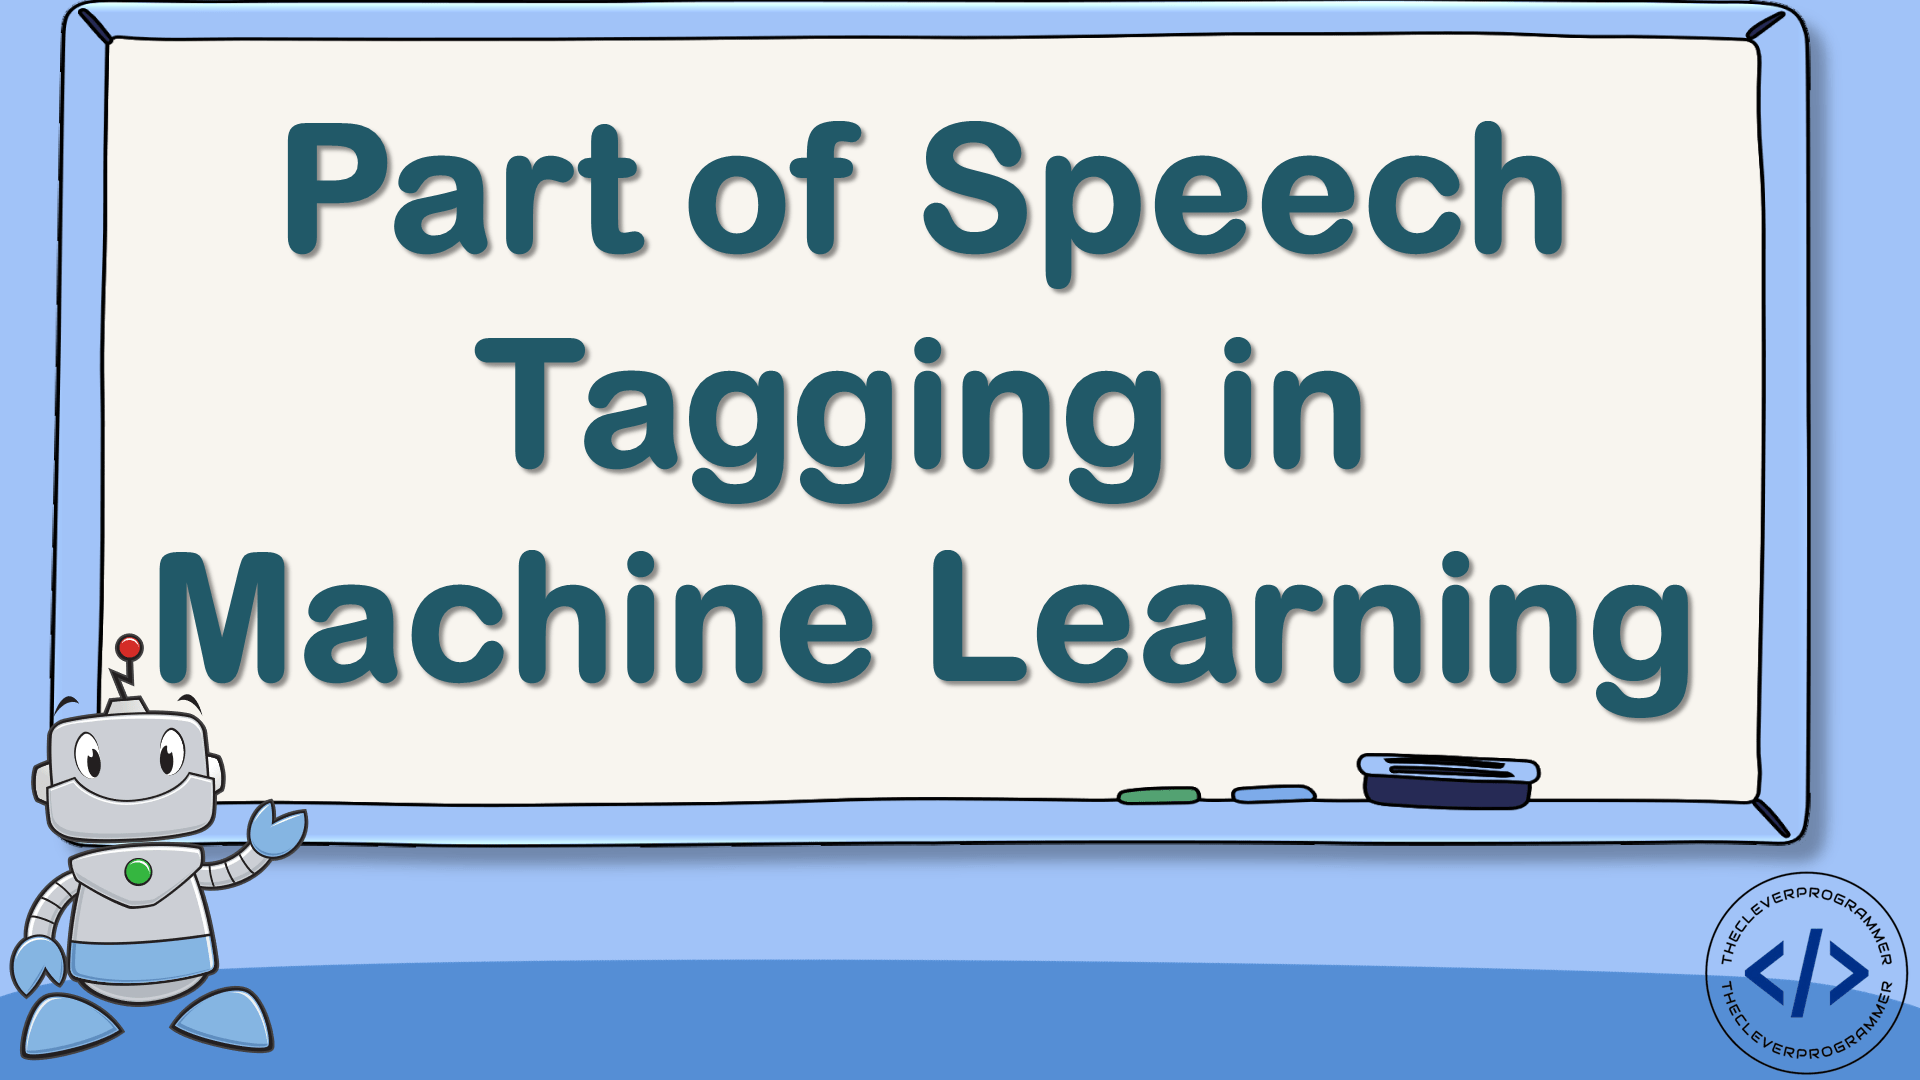 Part of Speech Tagging in Machine Learning